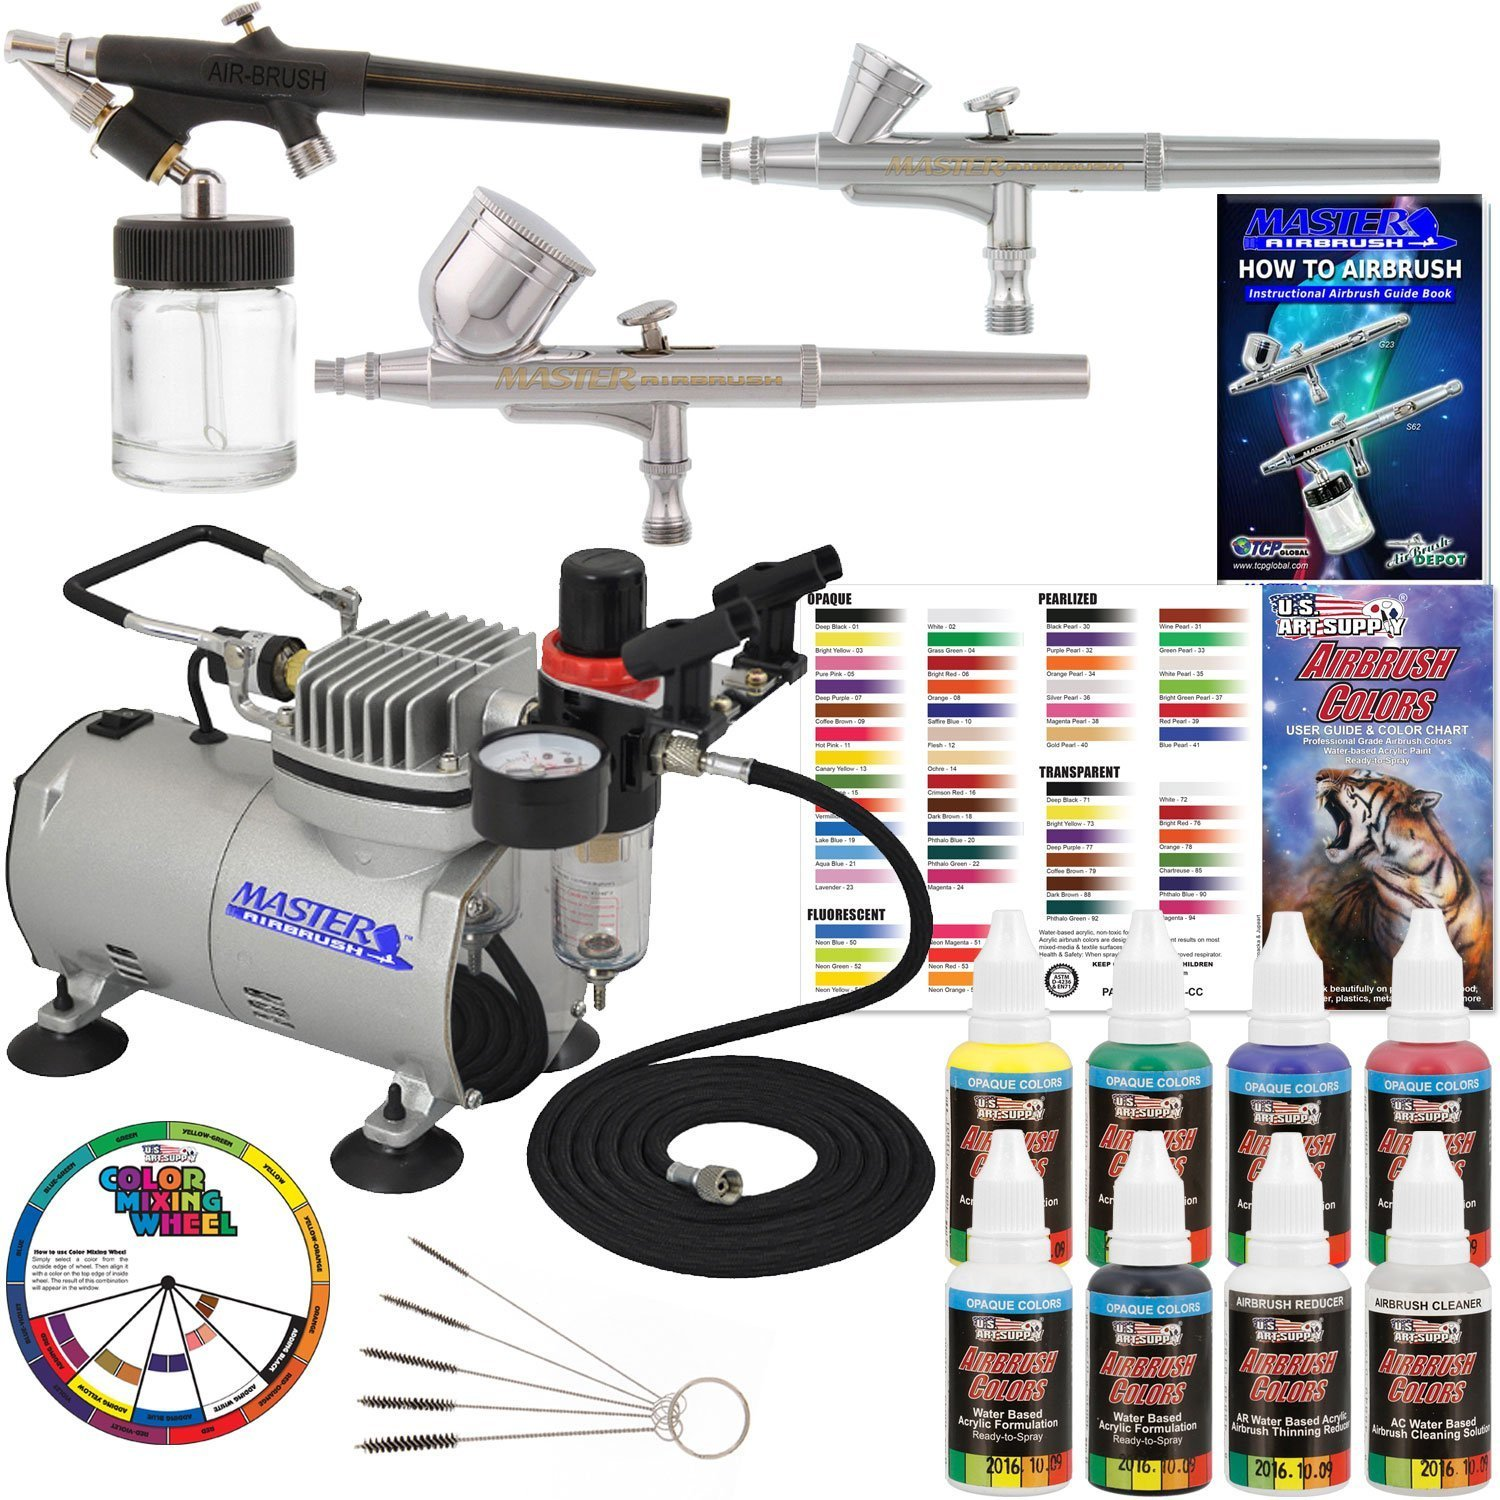 Master Airbrush Professional 3 Airbrush System with Compressor and 6 Color Primary Paint Set KIT-SP7B-20-2